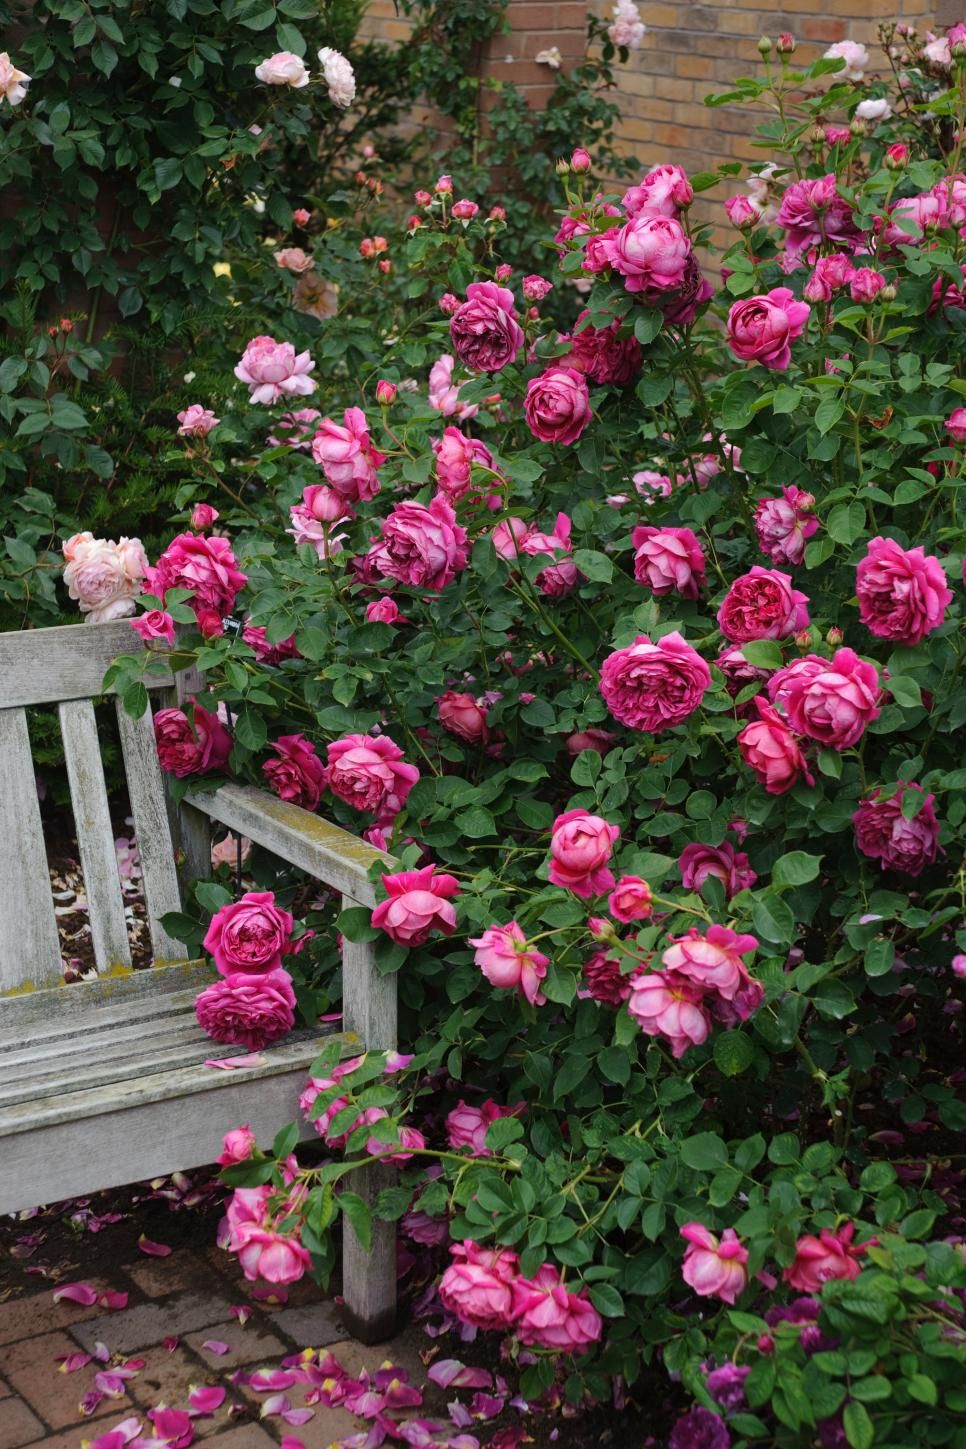 The most popular english roses in america david austin beautiful british rose breeder david austin creates some of the most beautiful flowers in the world izmirmasajfo Images